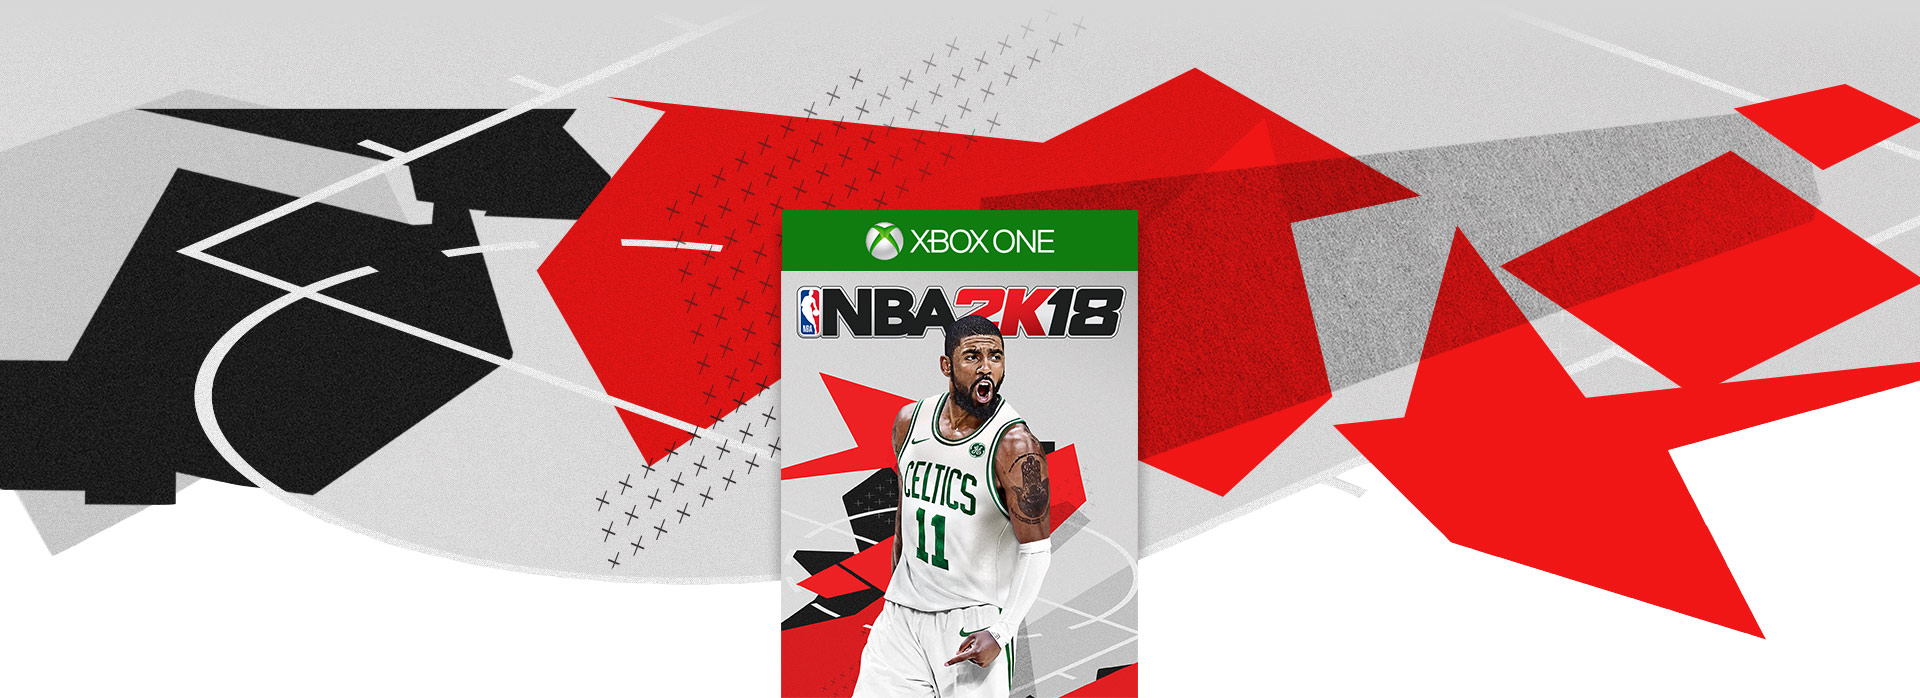 NBA 2K18 Box shot over background